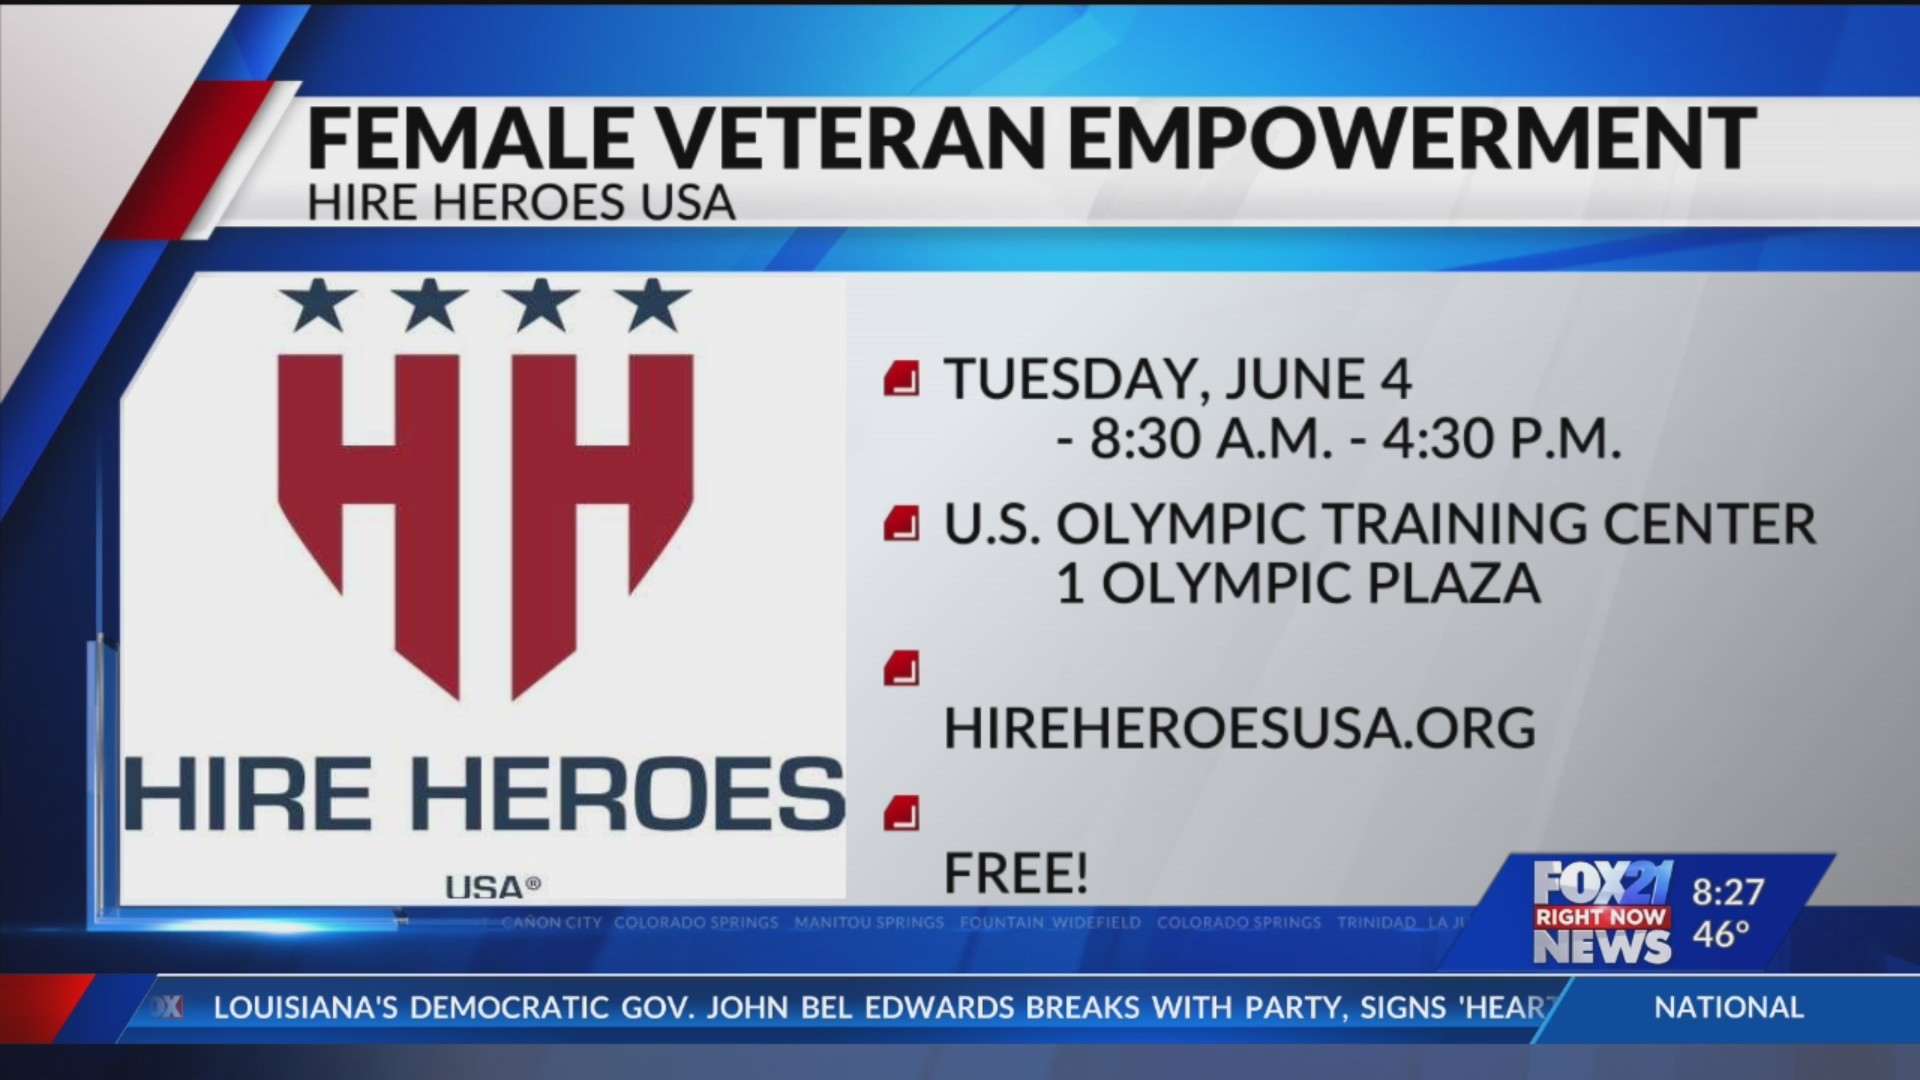 Hire Heroes hosting free workshop for female military members and veterans